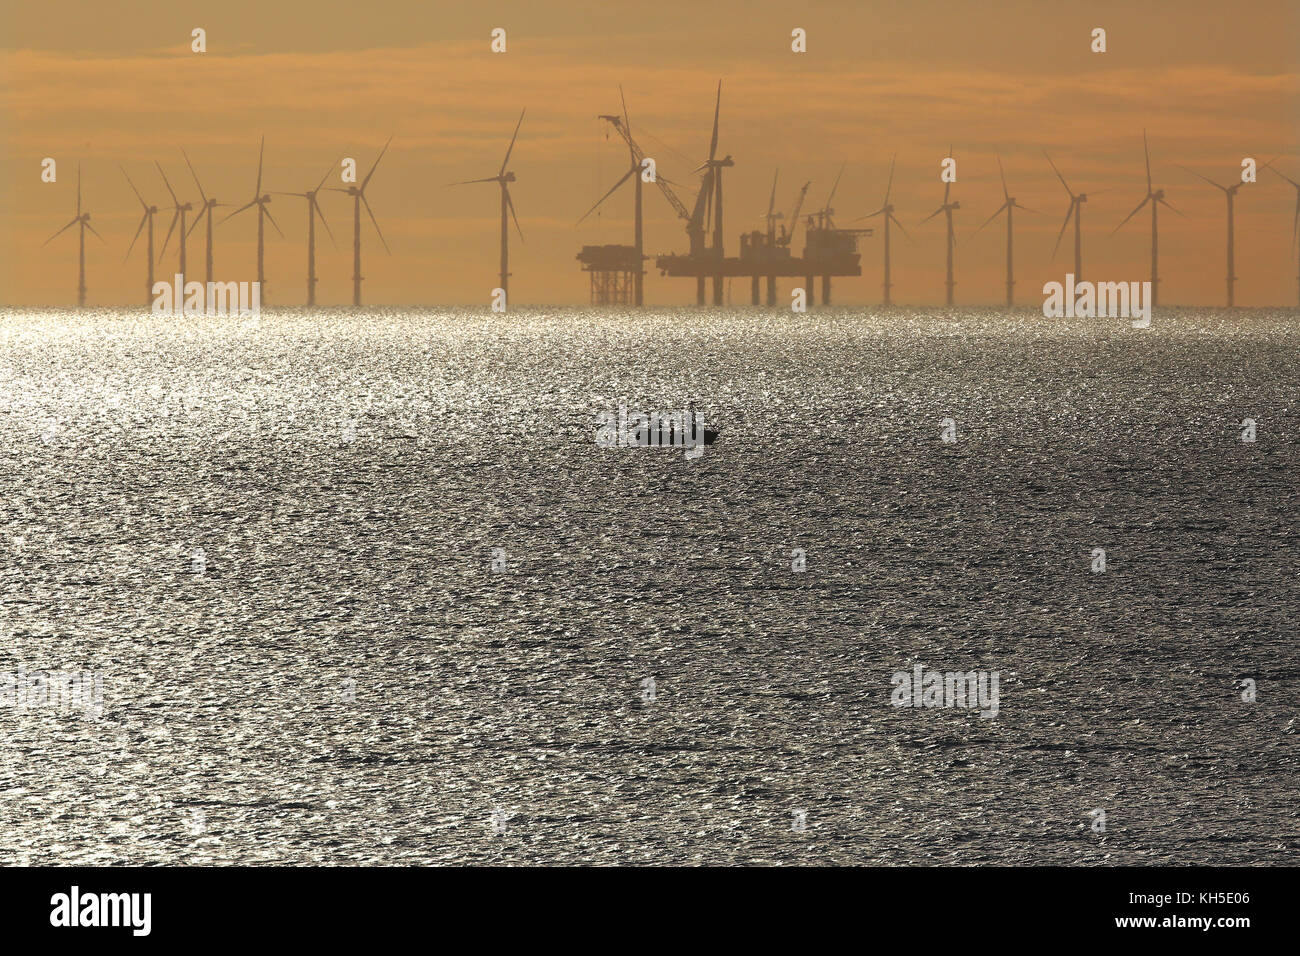 A small fishing boat sails past the giant wind turbines of